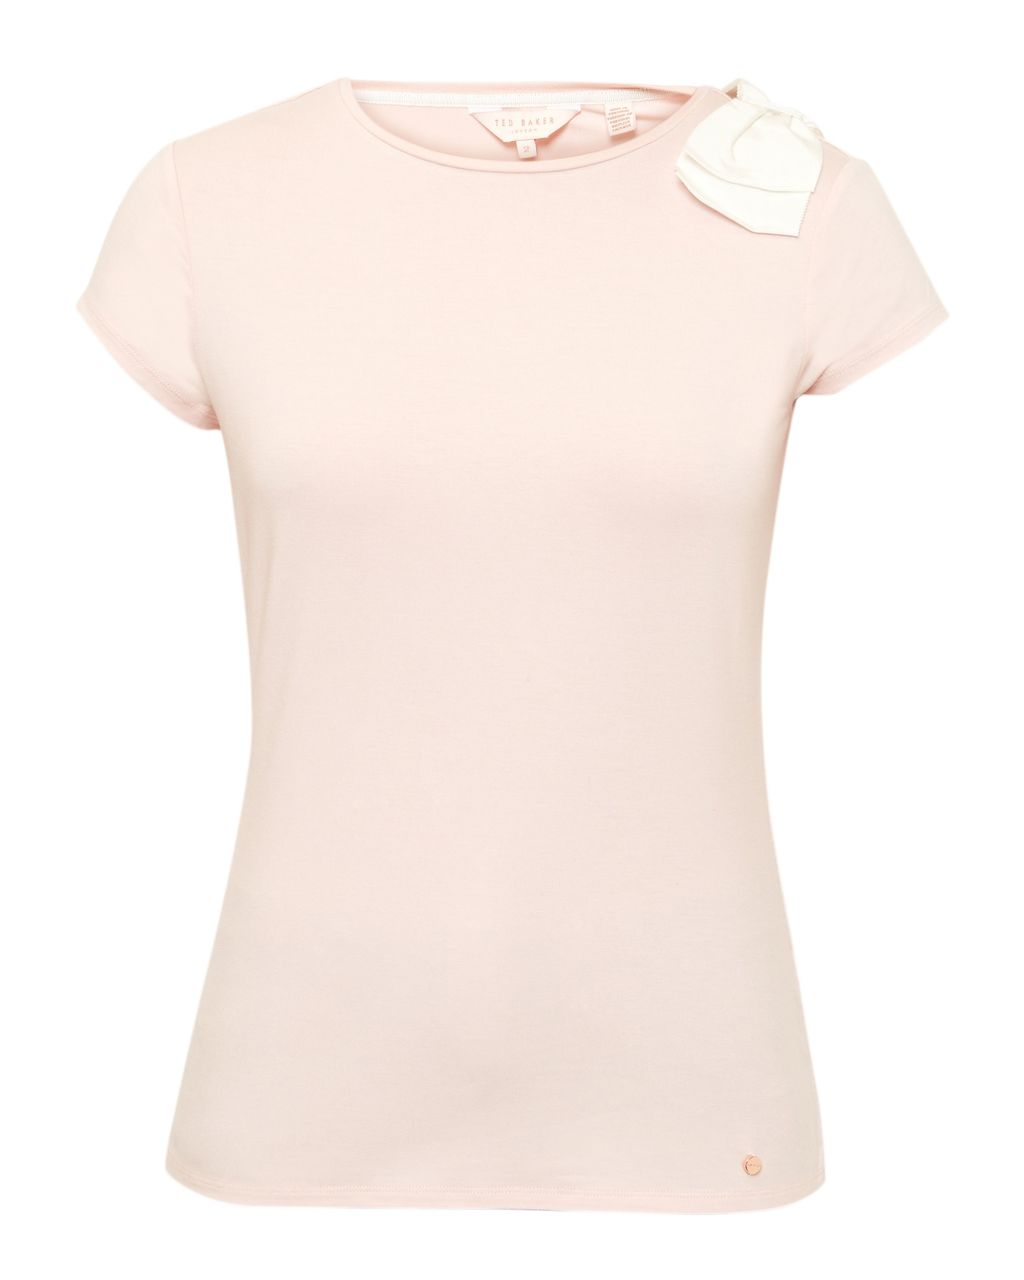 Tuline Oversized Bow T Shirt, Blush - pattern: plain; bust detail: added detail/embellishment at bust; style: t-shirt; predominant colour: blush; occasions: casual; length: standard; fibres: viscose/rayon - stretch; fit: body skimming; neckline: crew; sleeve length: short sleeve; sleeve style: standard; pattern type: fabric; texture group: jersey - stretchy/drapey; embellishment: bow; season: s/s 2016